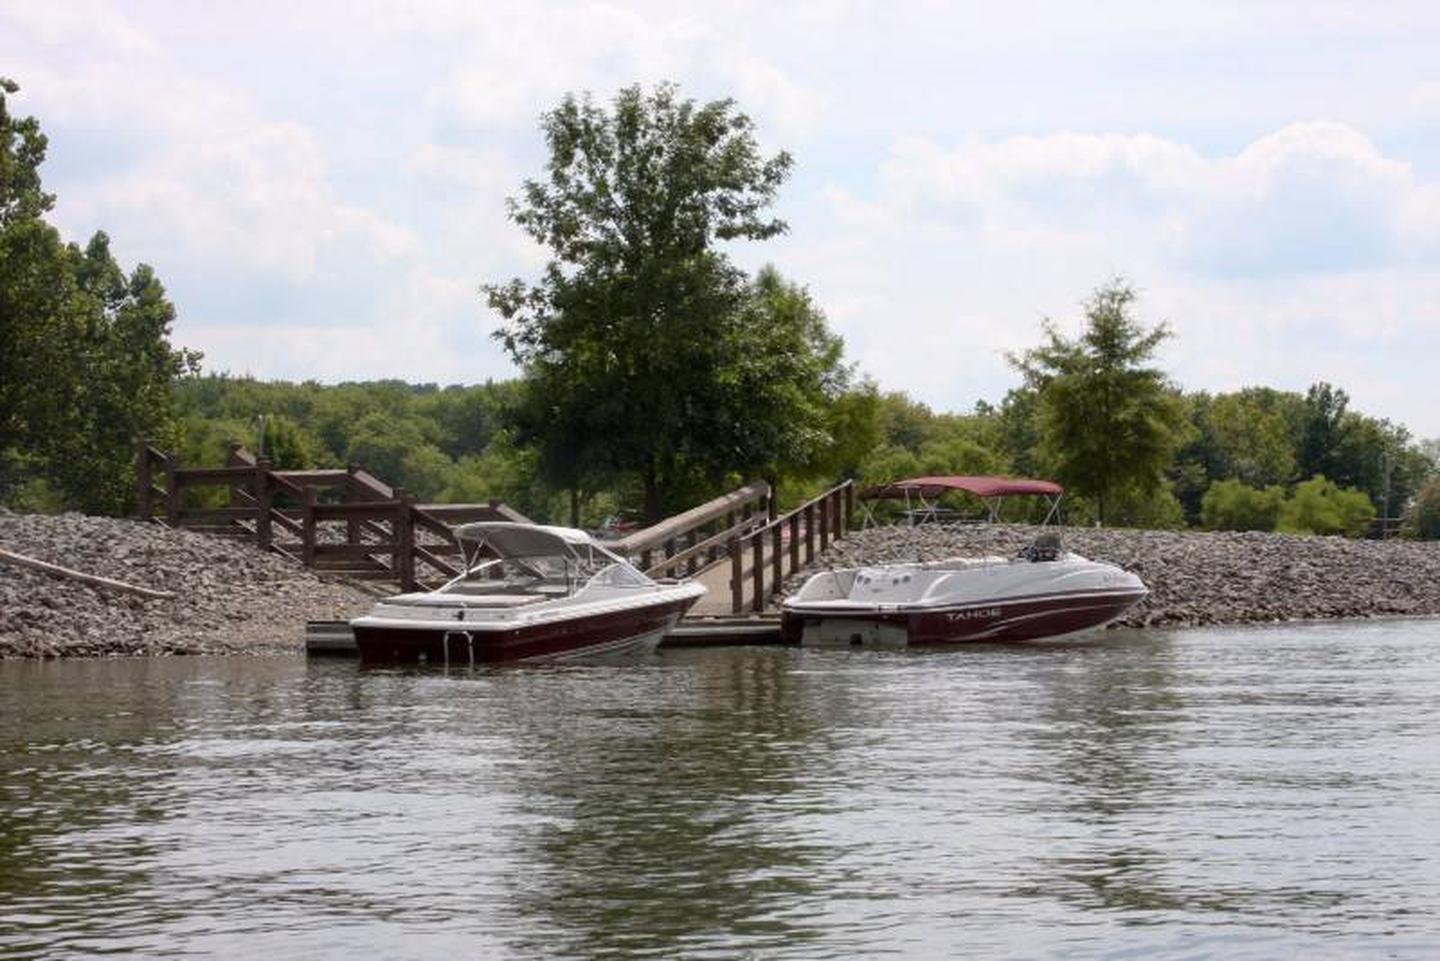 Pikes Ridge Courtesy DockThe campground has 3 courtesy docks, campers are able to keep boats tied up on 2 of 3 docks